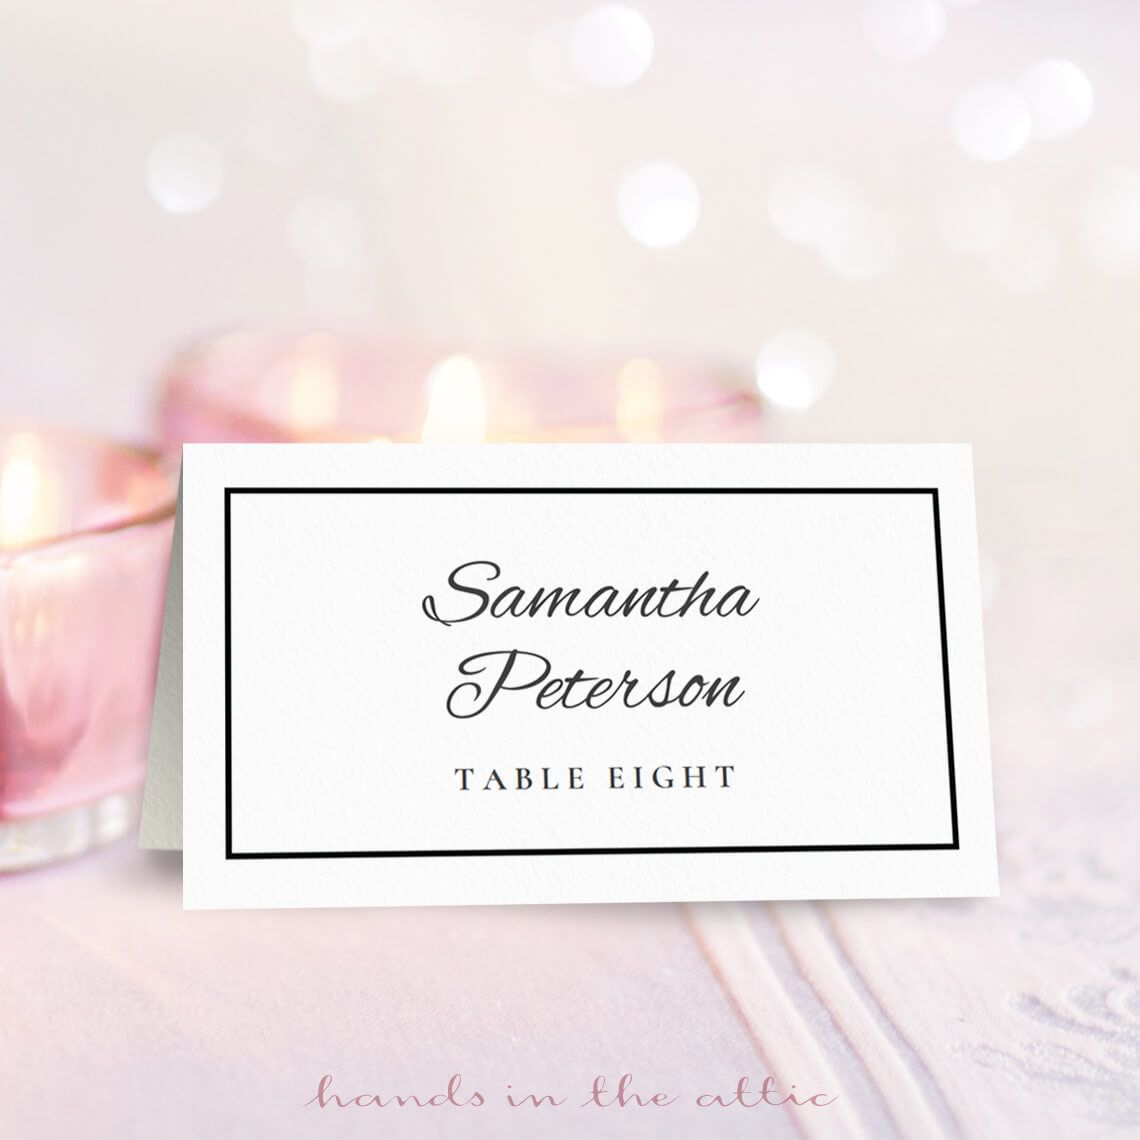 003 Surprising Wedding Name Card Template Highest Clarity  Templates For Table Place FreeFull